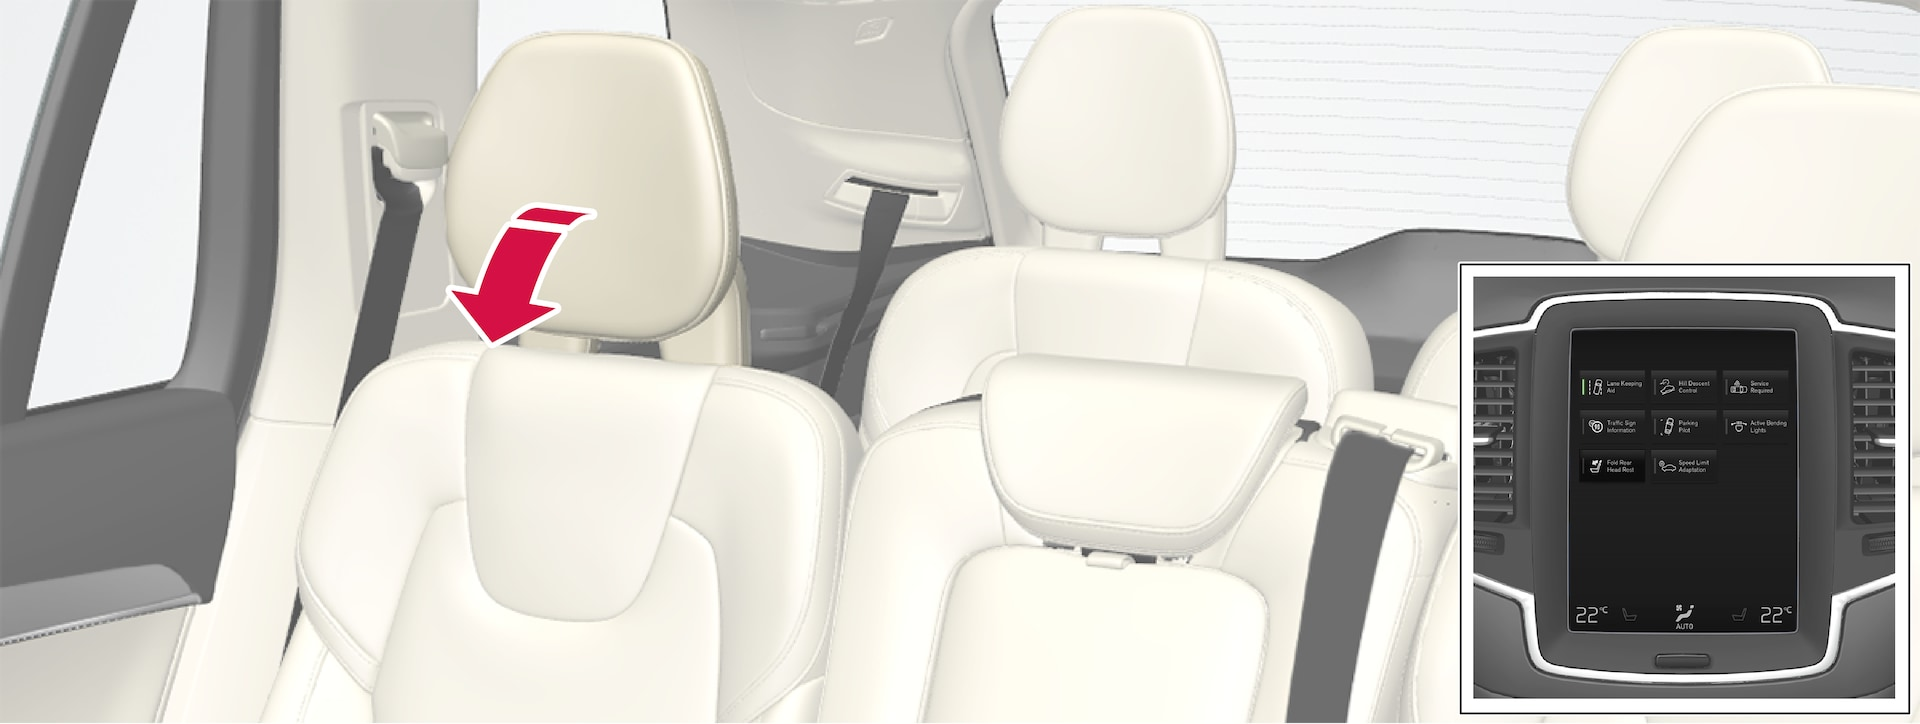 P5-1507-2nd seat row-Automatic folding down headrest back